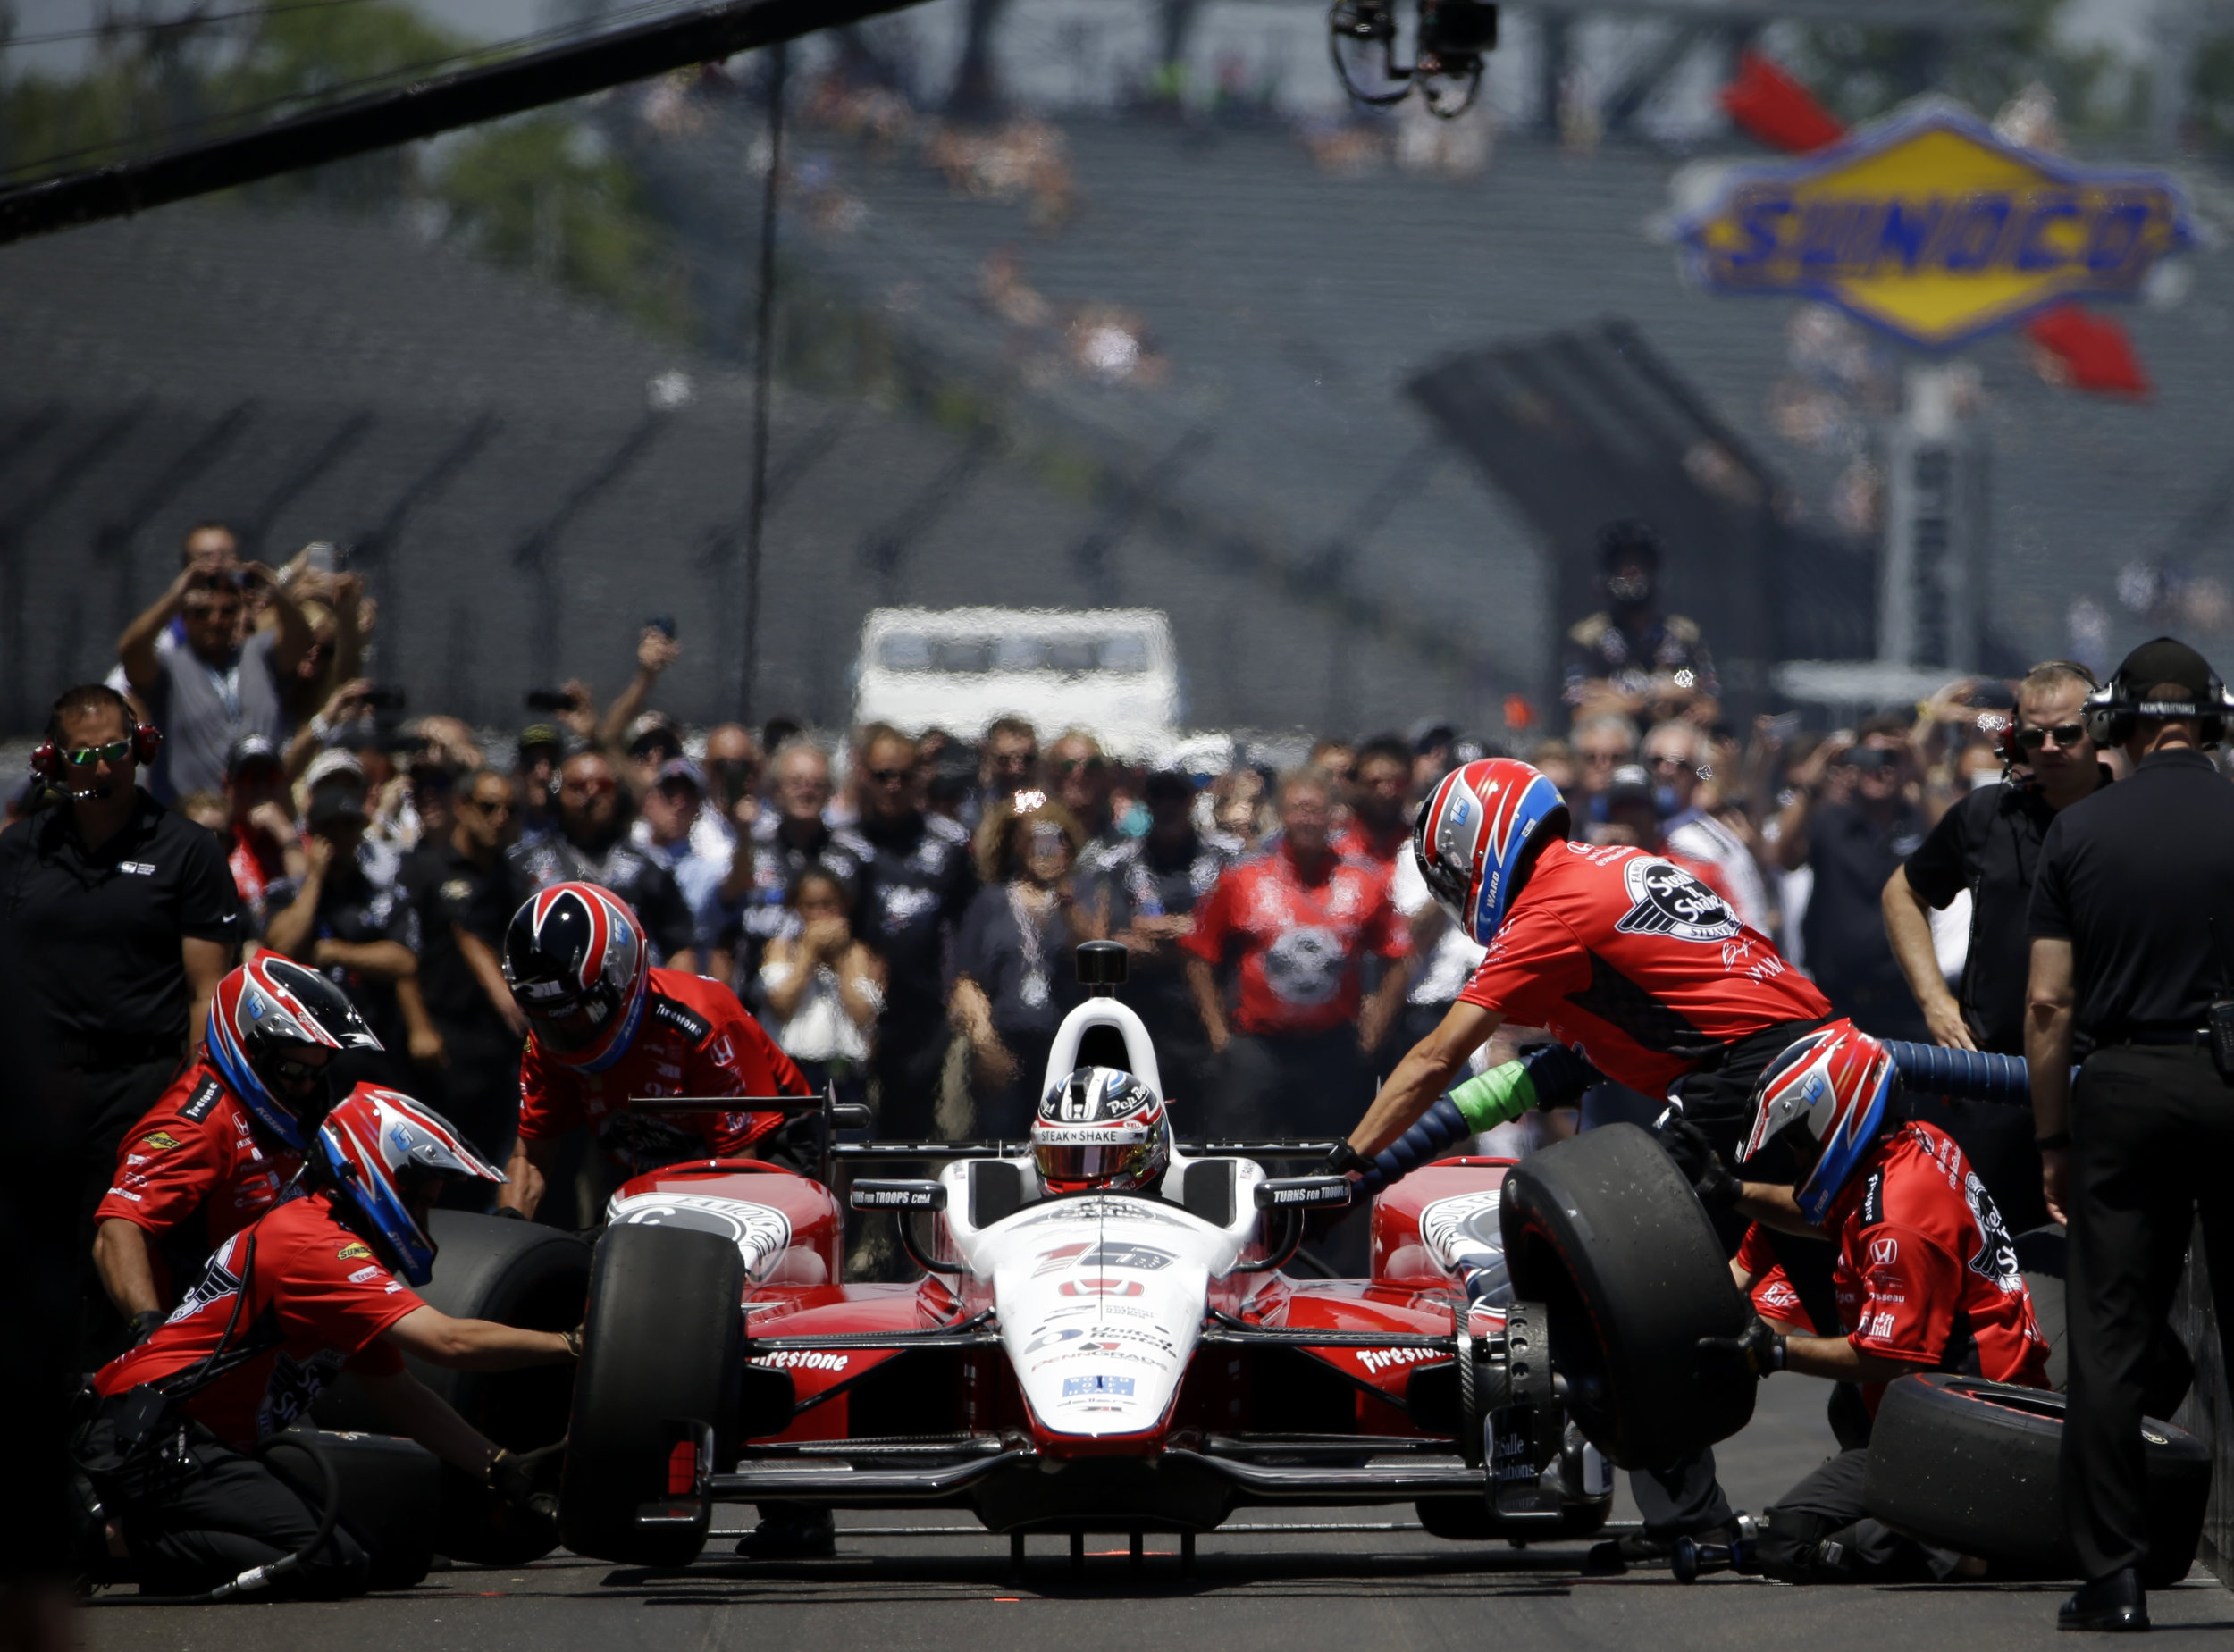 Crowds gather to watch as Graham Rahal's pit crew refuels and re-tires his car during the Indy 500 Pit Stop Challenge at Carb Day on Friday, May 26, 2017, for the 101st running of the Indy 500.